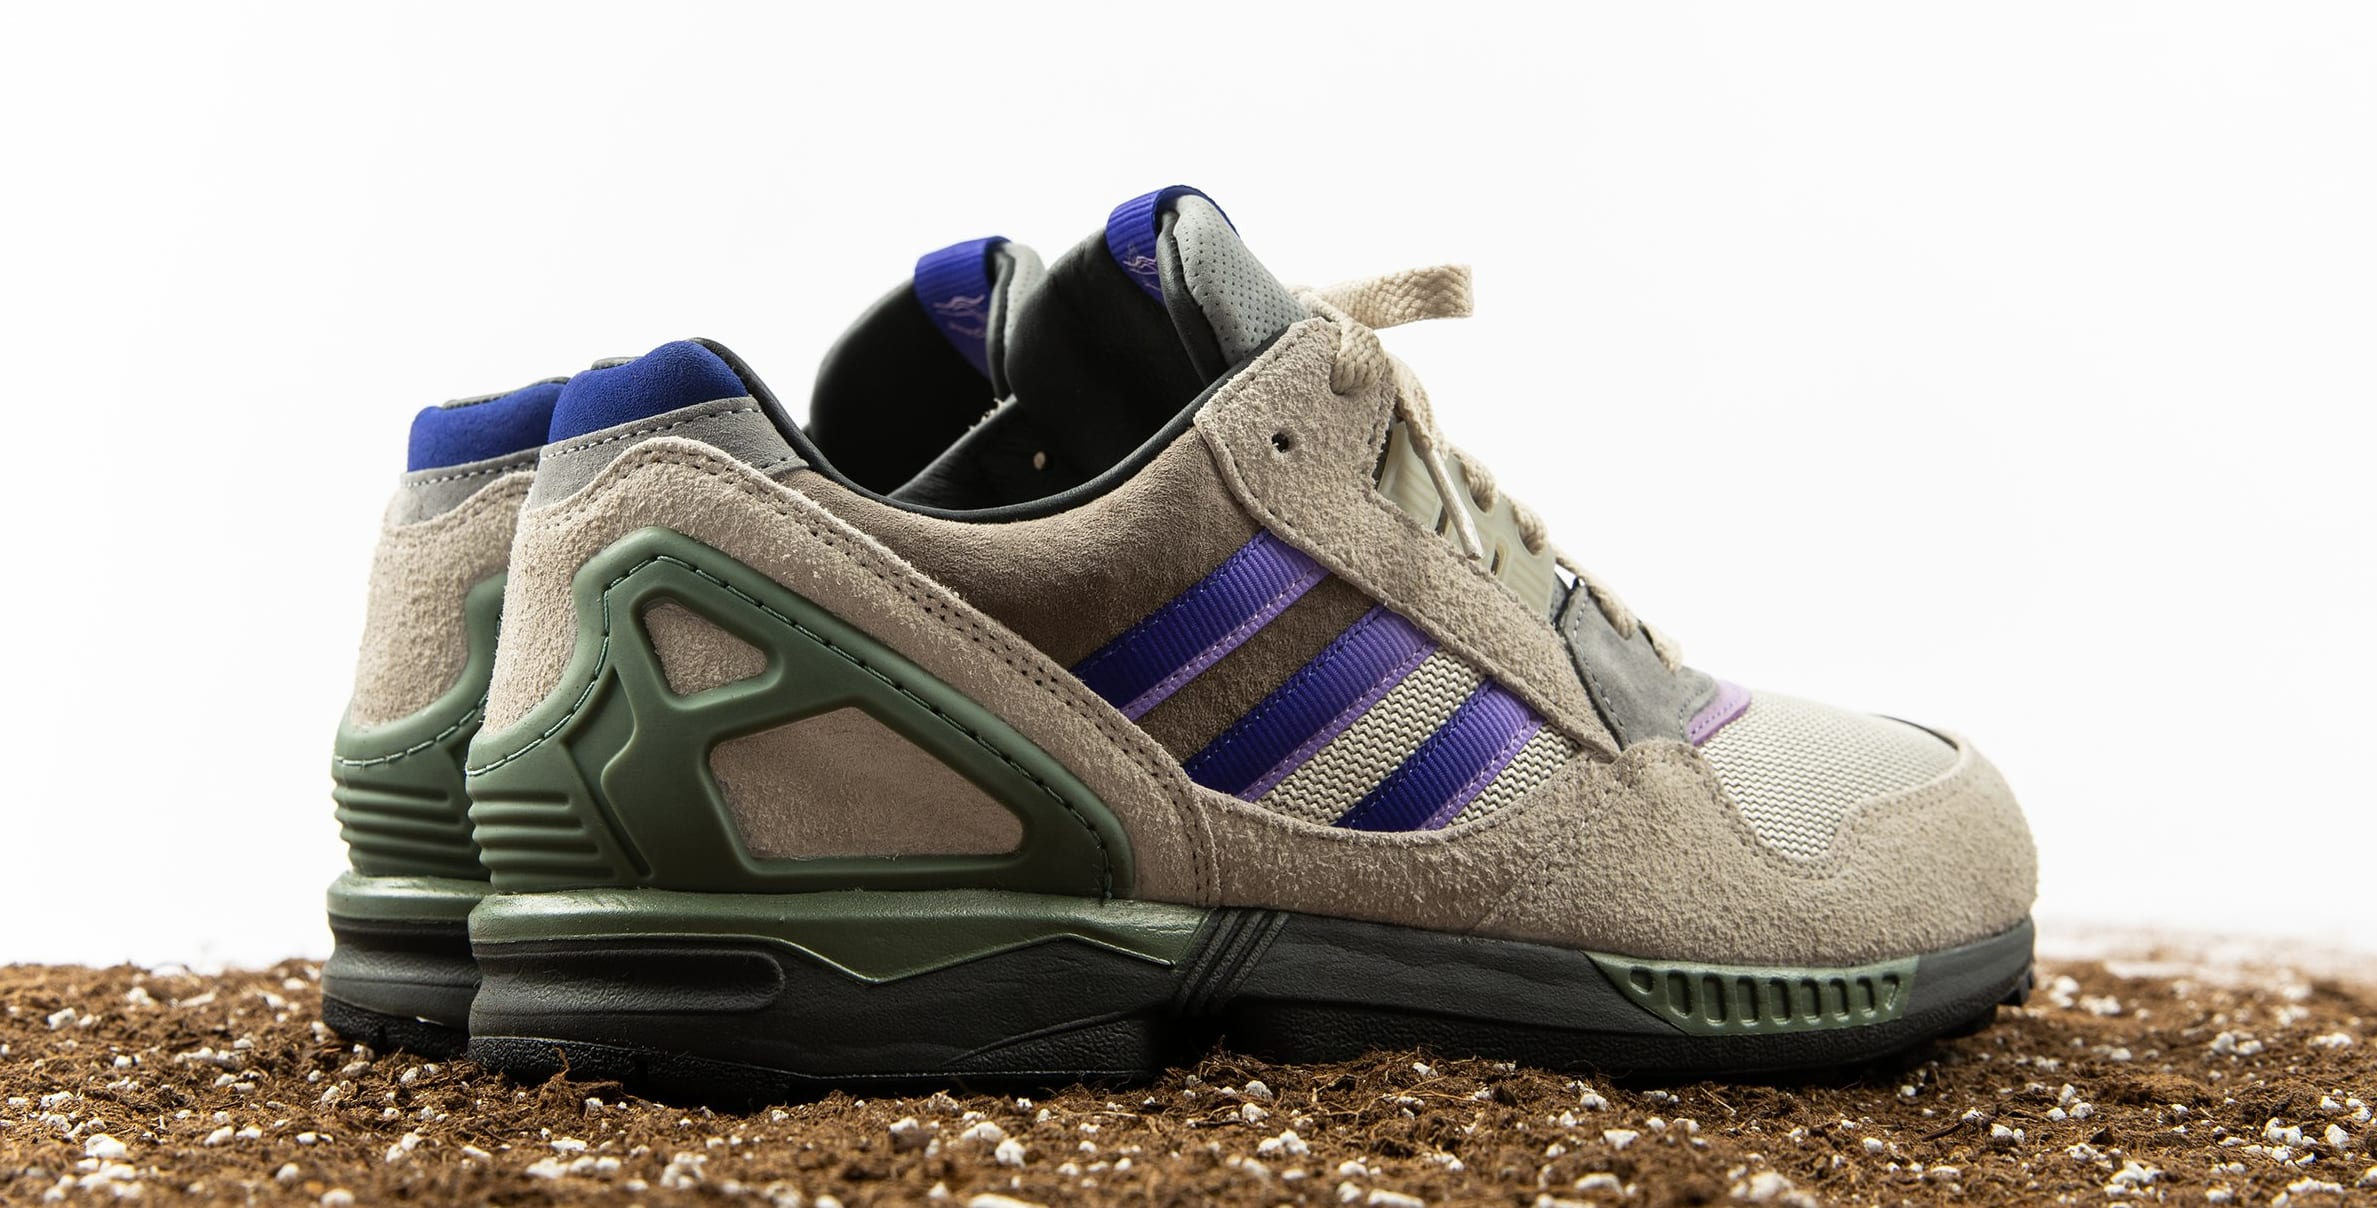 packer-shoes-adidas-consortium-zx-9000-meadow-violet-lateral